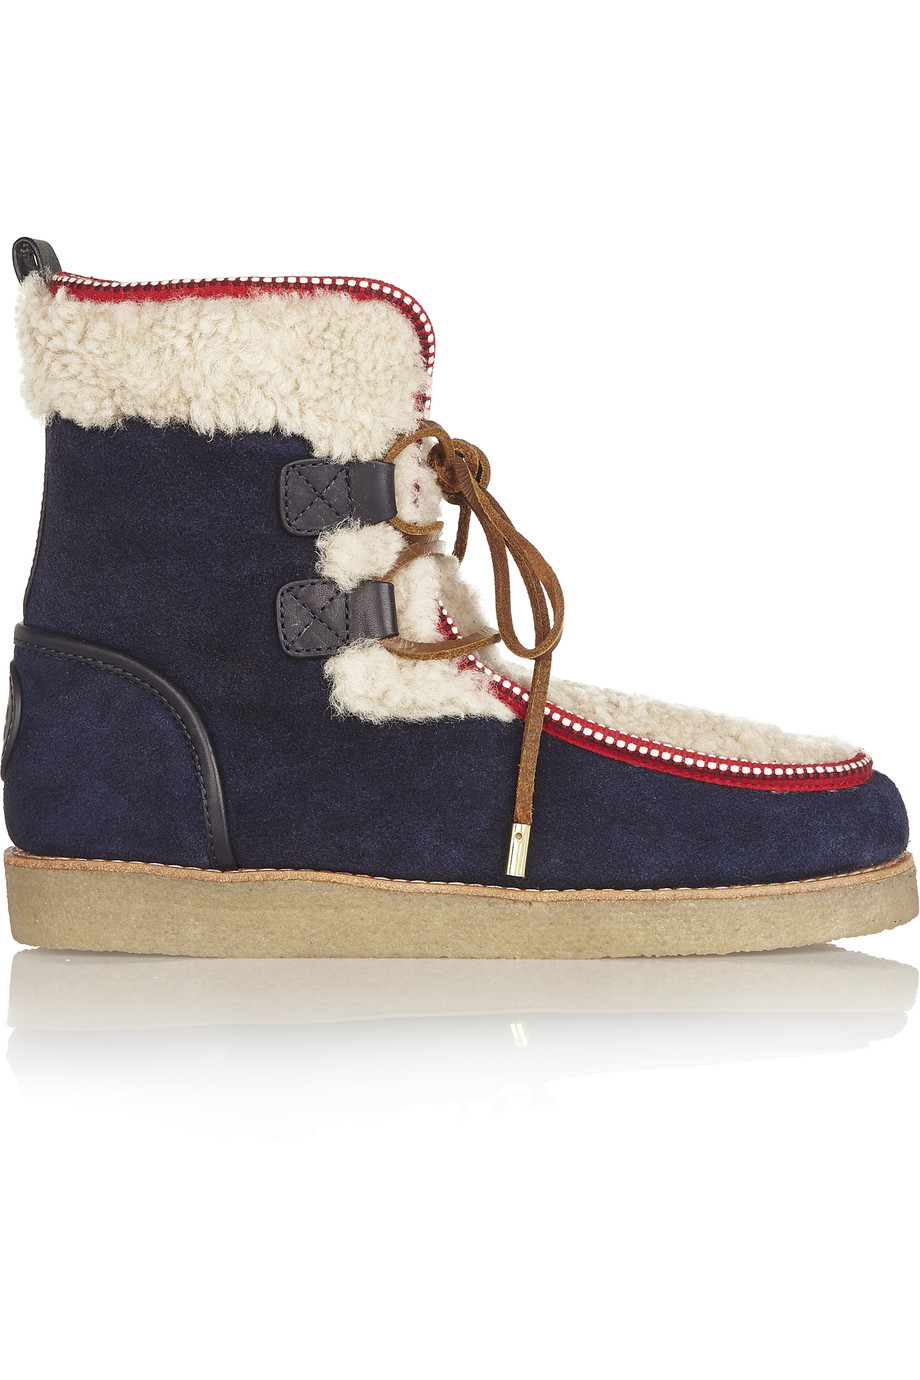 26436c8fa56 Elliot shearling and suede ankle boots